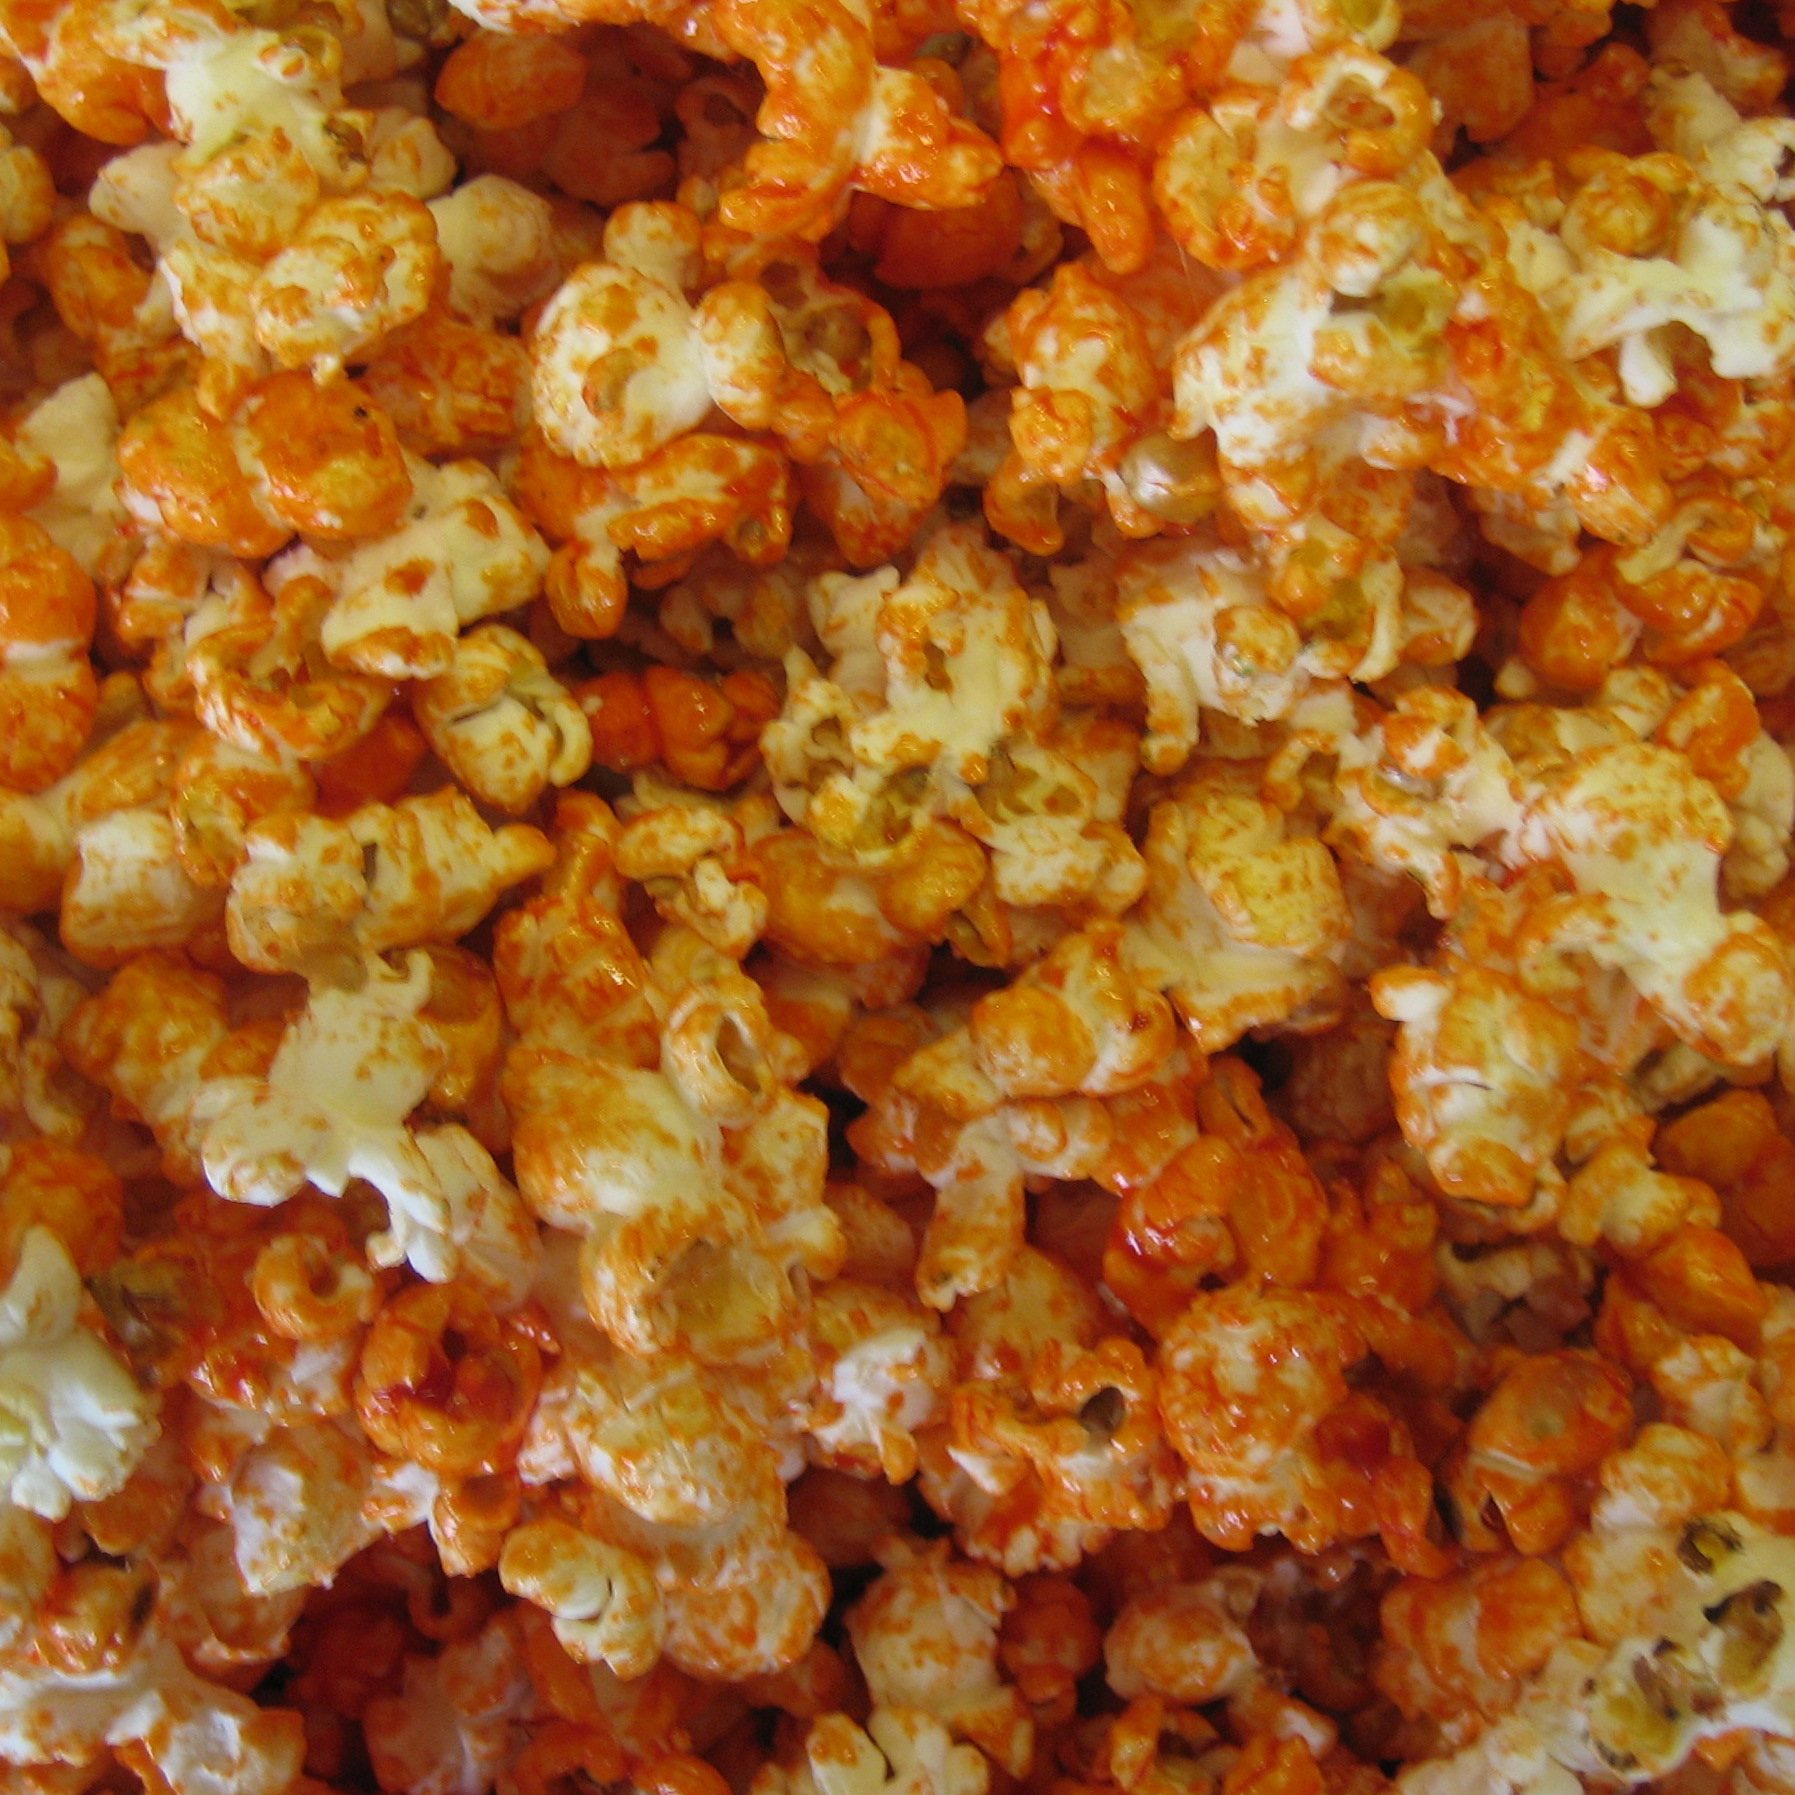 orange kettle corn